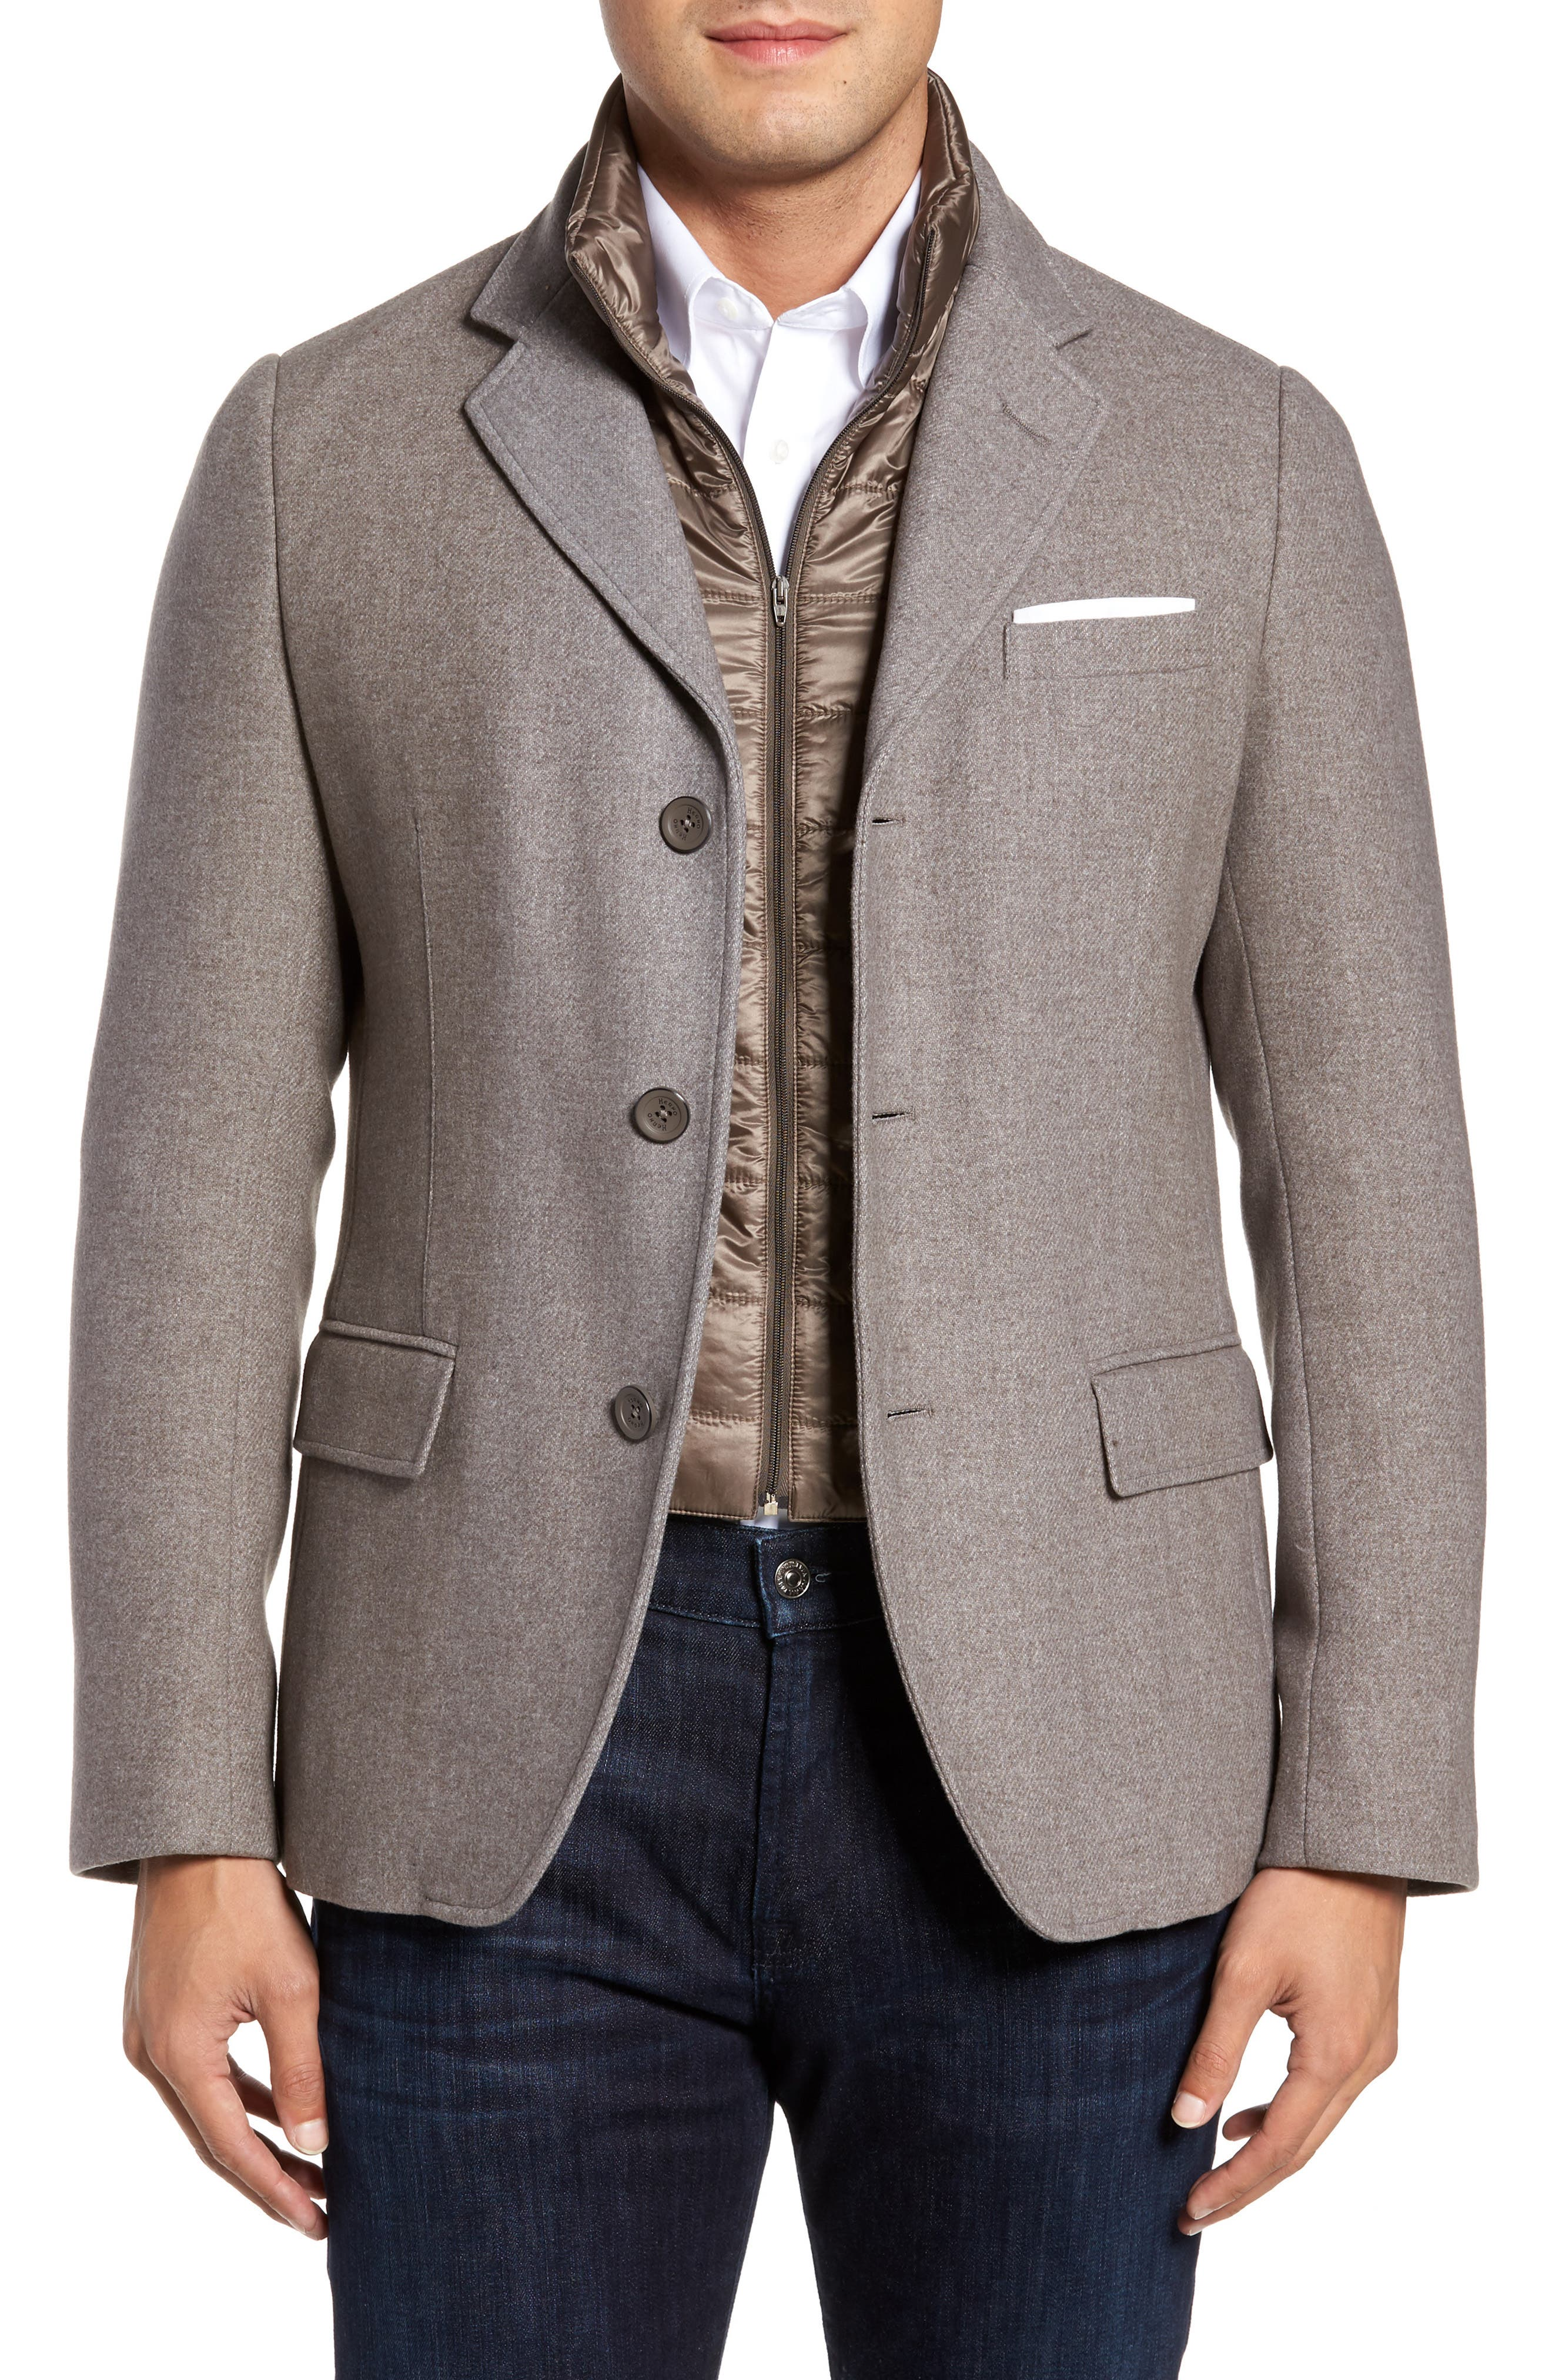 Alternate Image 1 Selected - Herno Wool Blend Blazer with Removable Quilted Bib